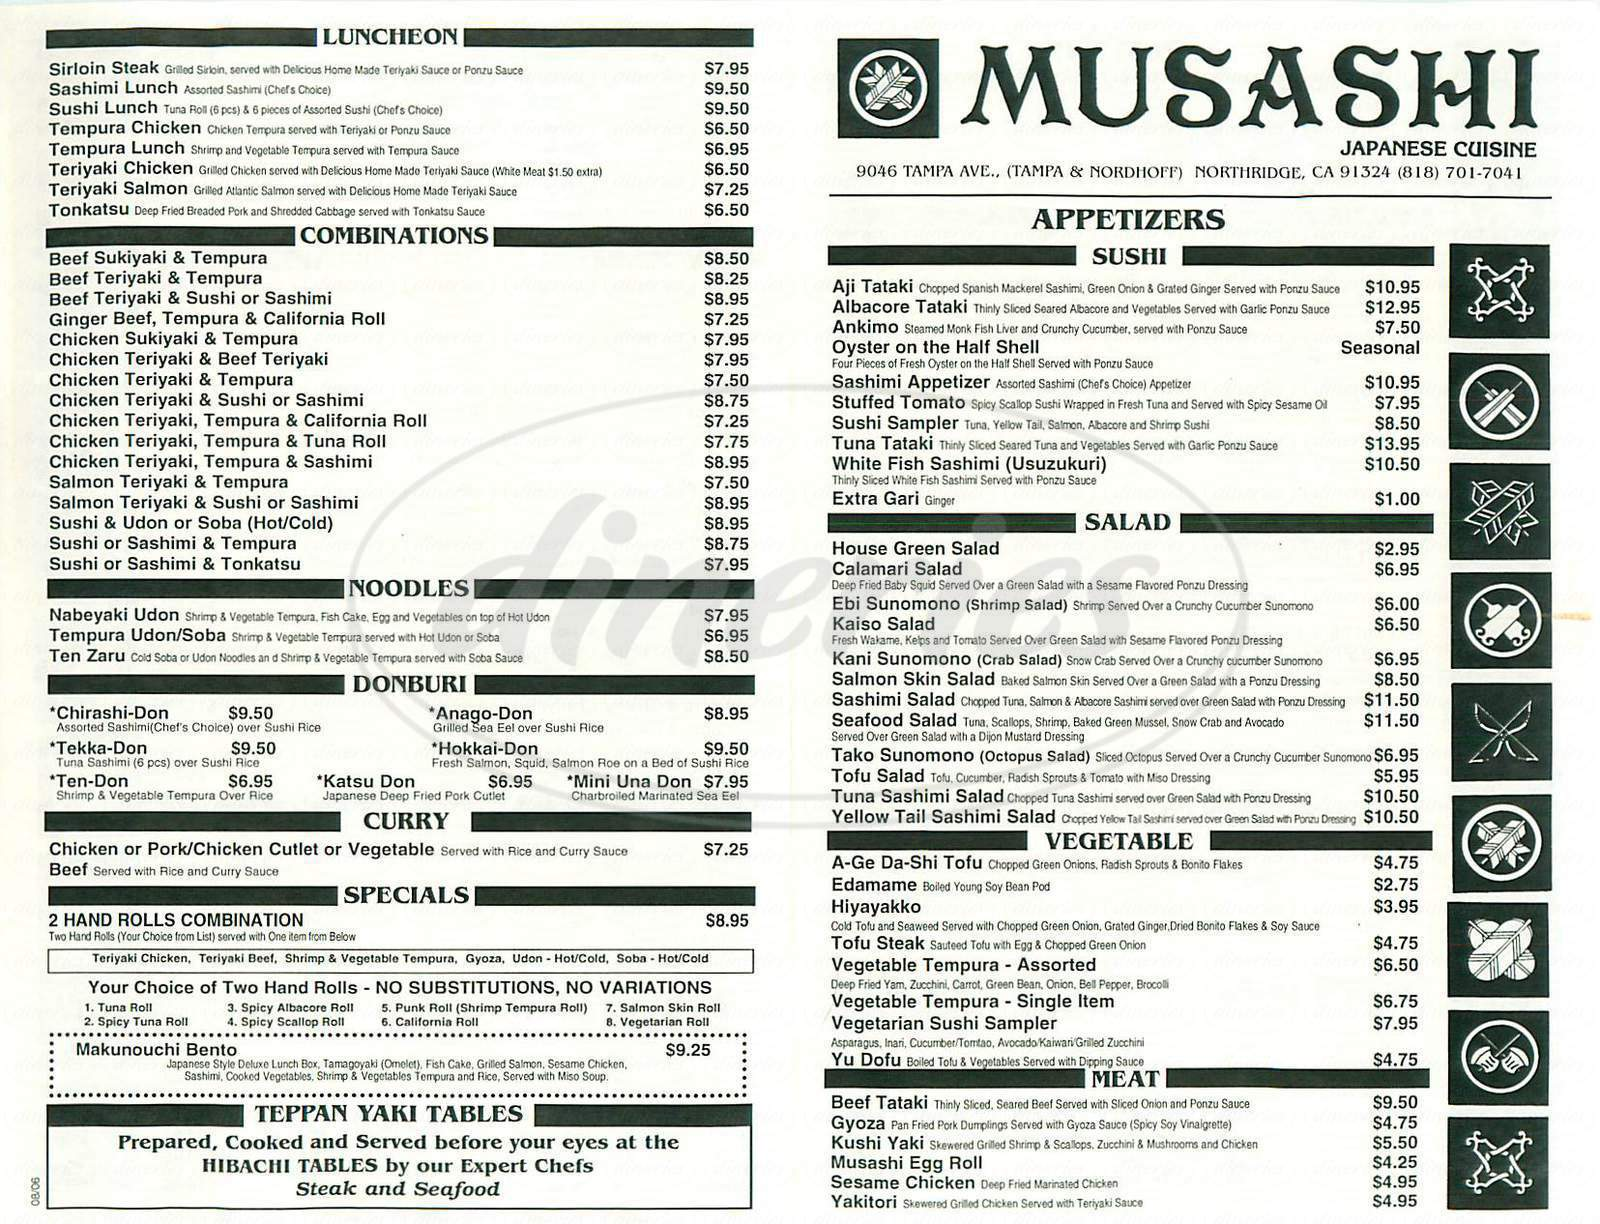 menu for Musashi